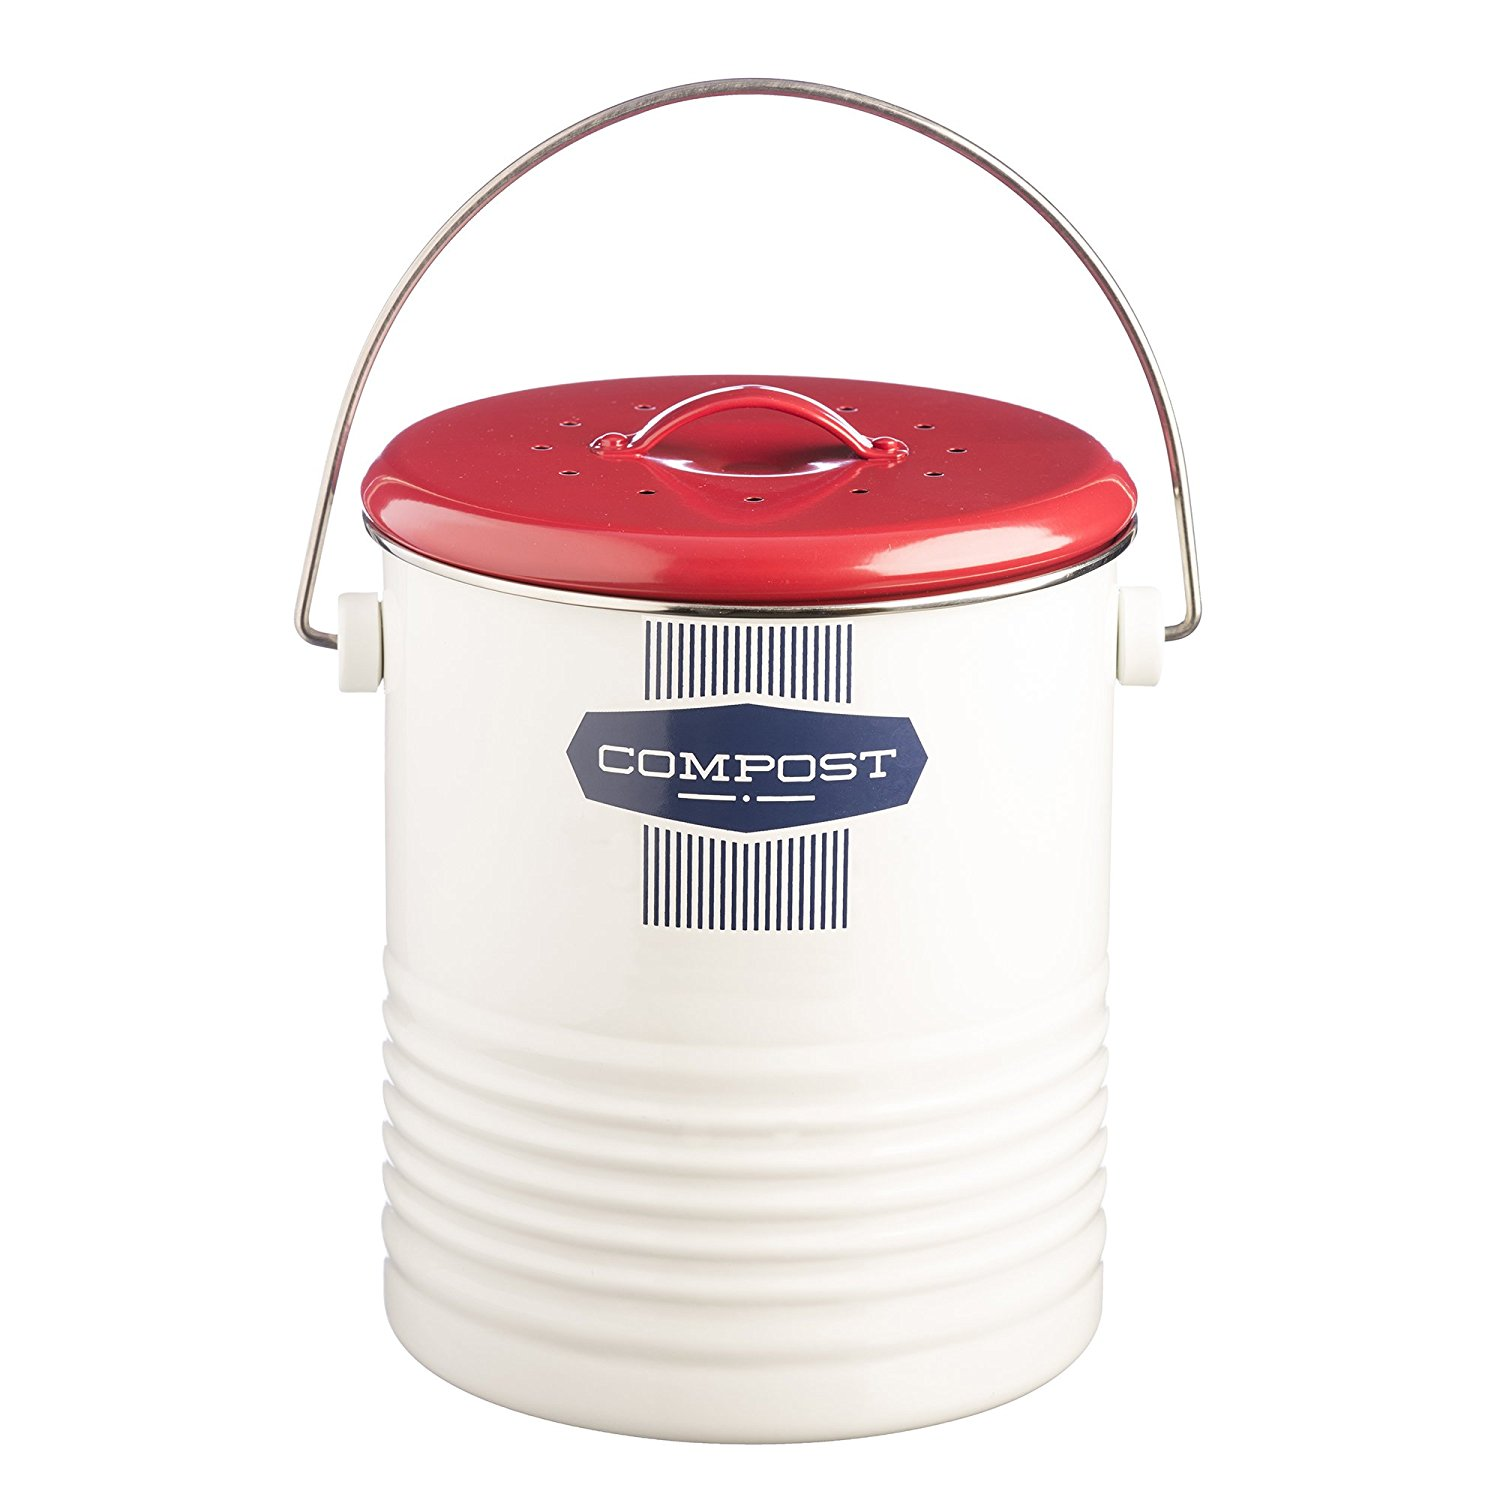 affiliate link amazon typhoon compost caddy vintage red white and blue kitchen